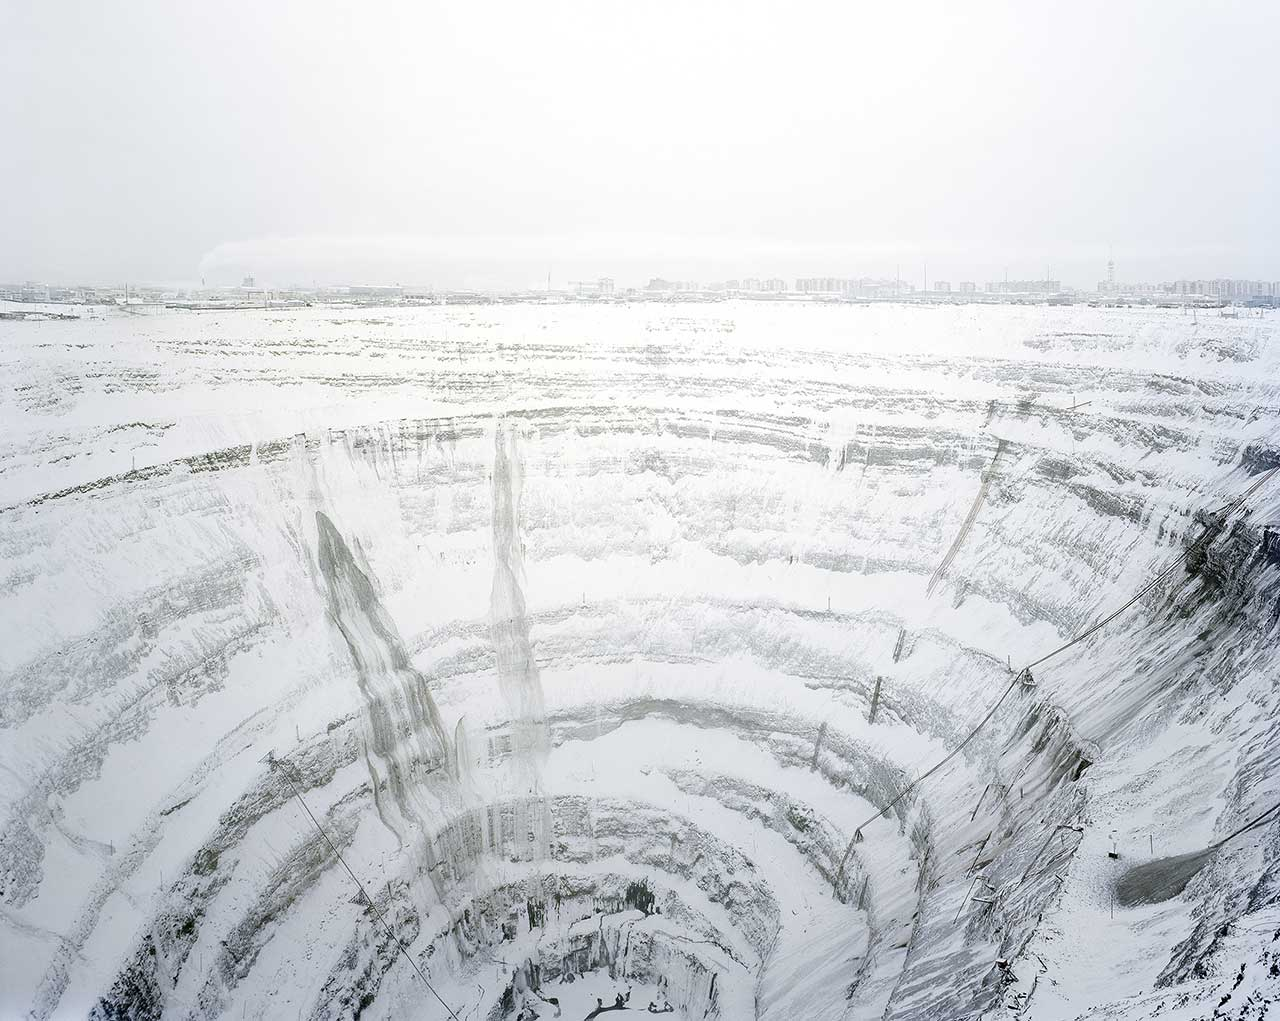 »Mirny« aus der Serie »Closed Cities«, 2009-2012. Foto: Gregor Sailer